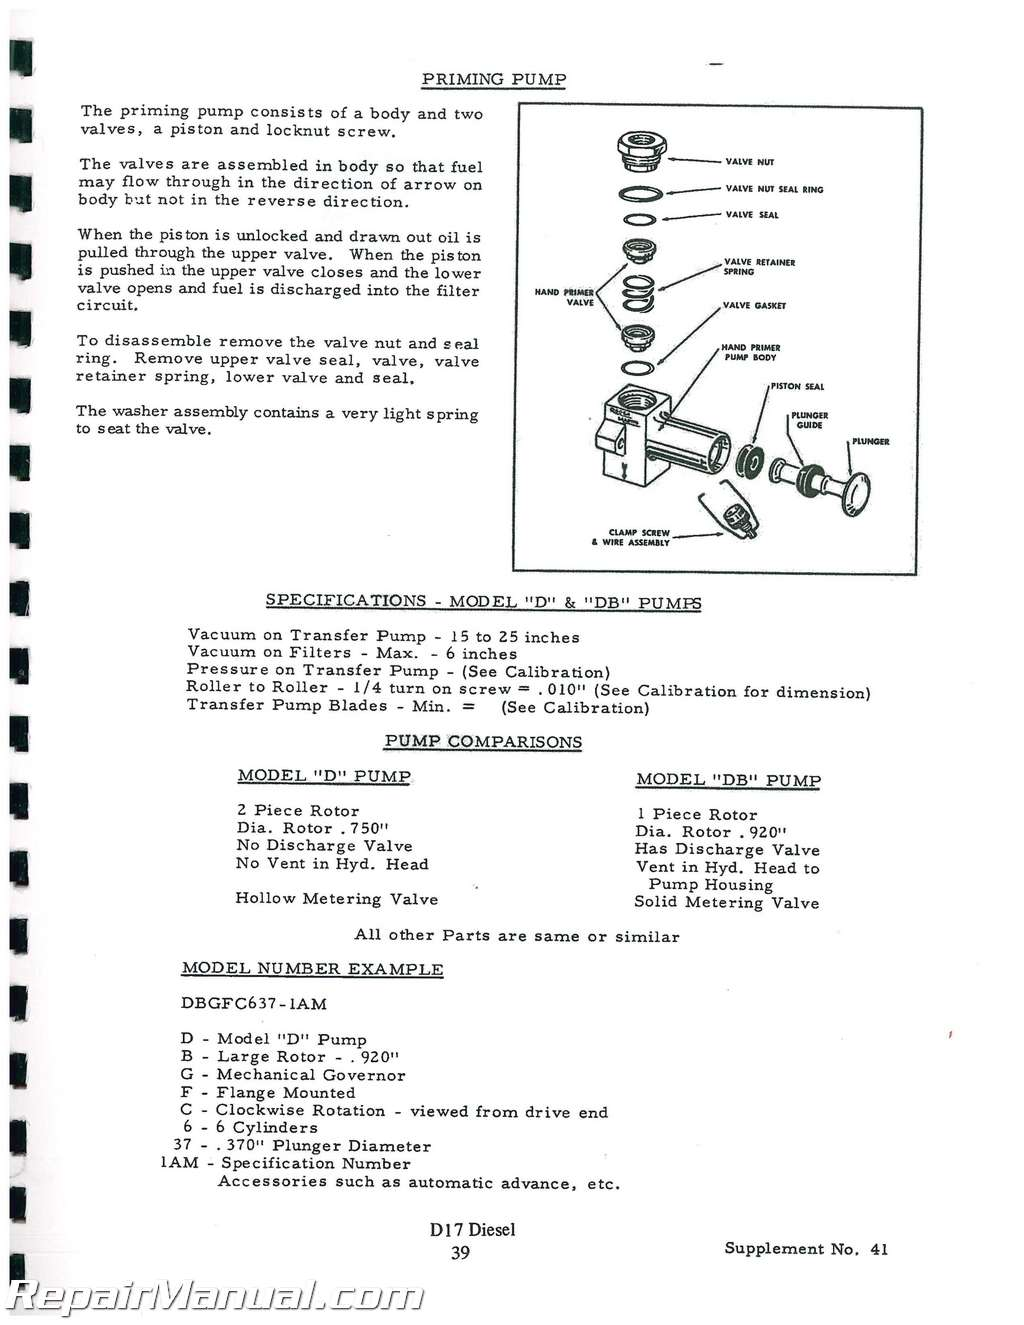 Allis Chalmers D17 Gas And sel Service Manual on